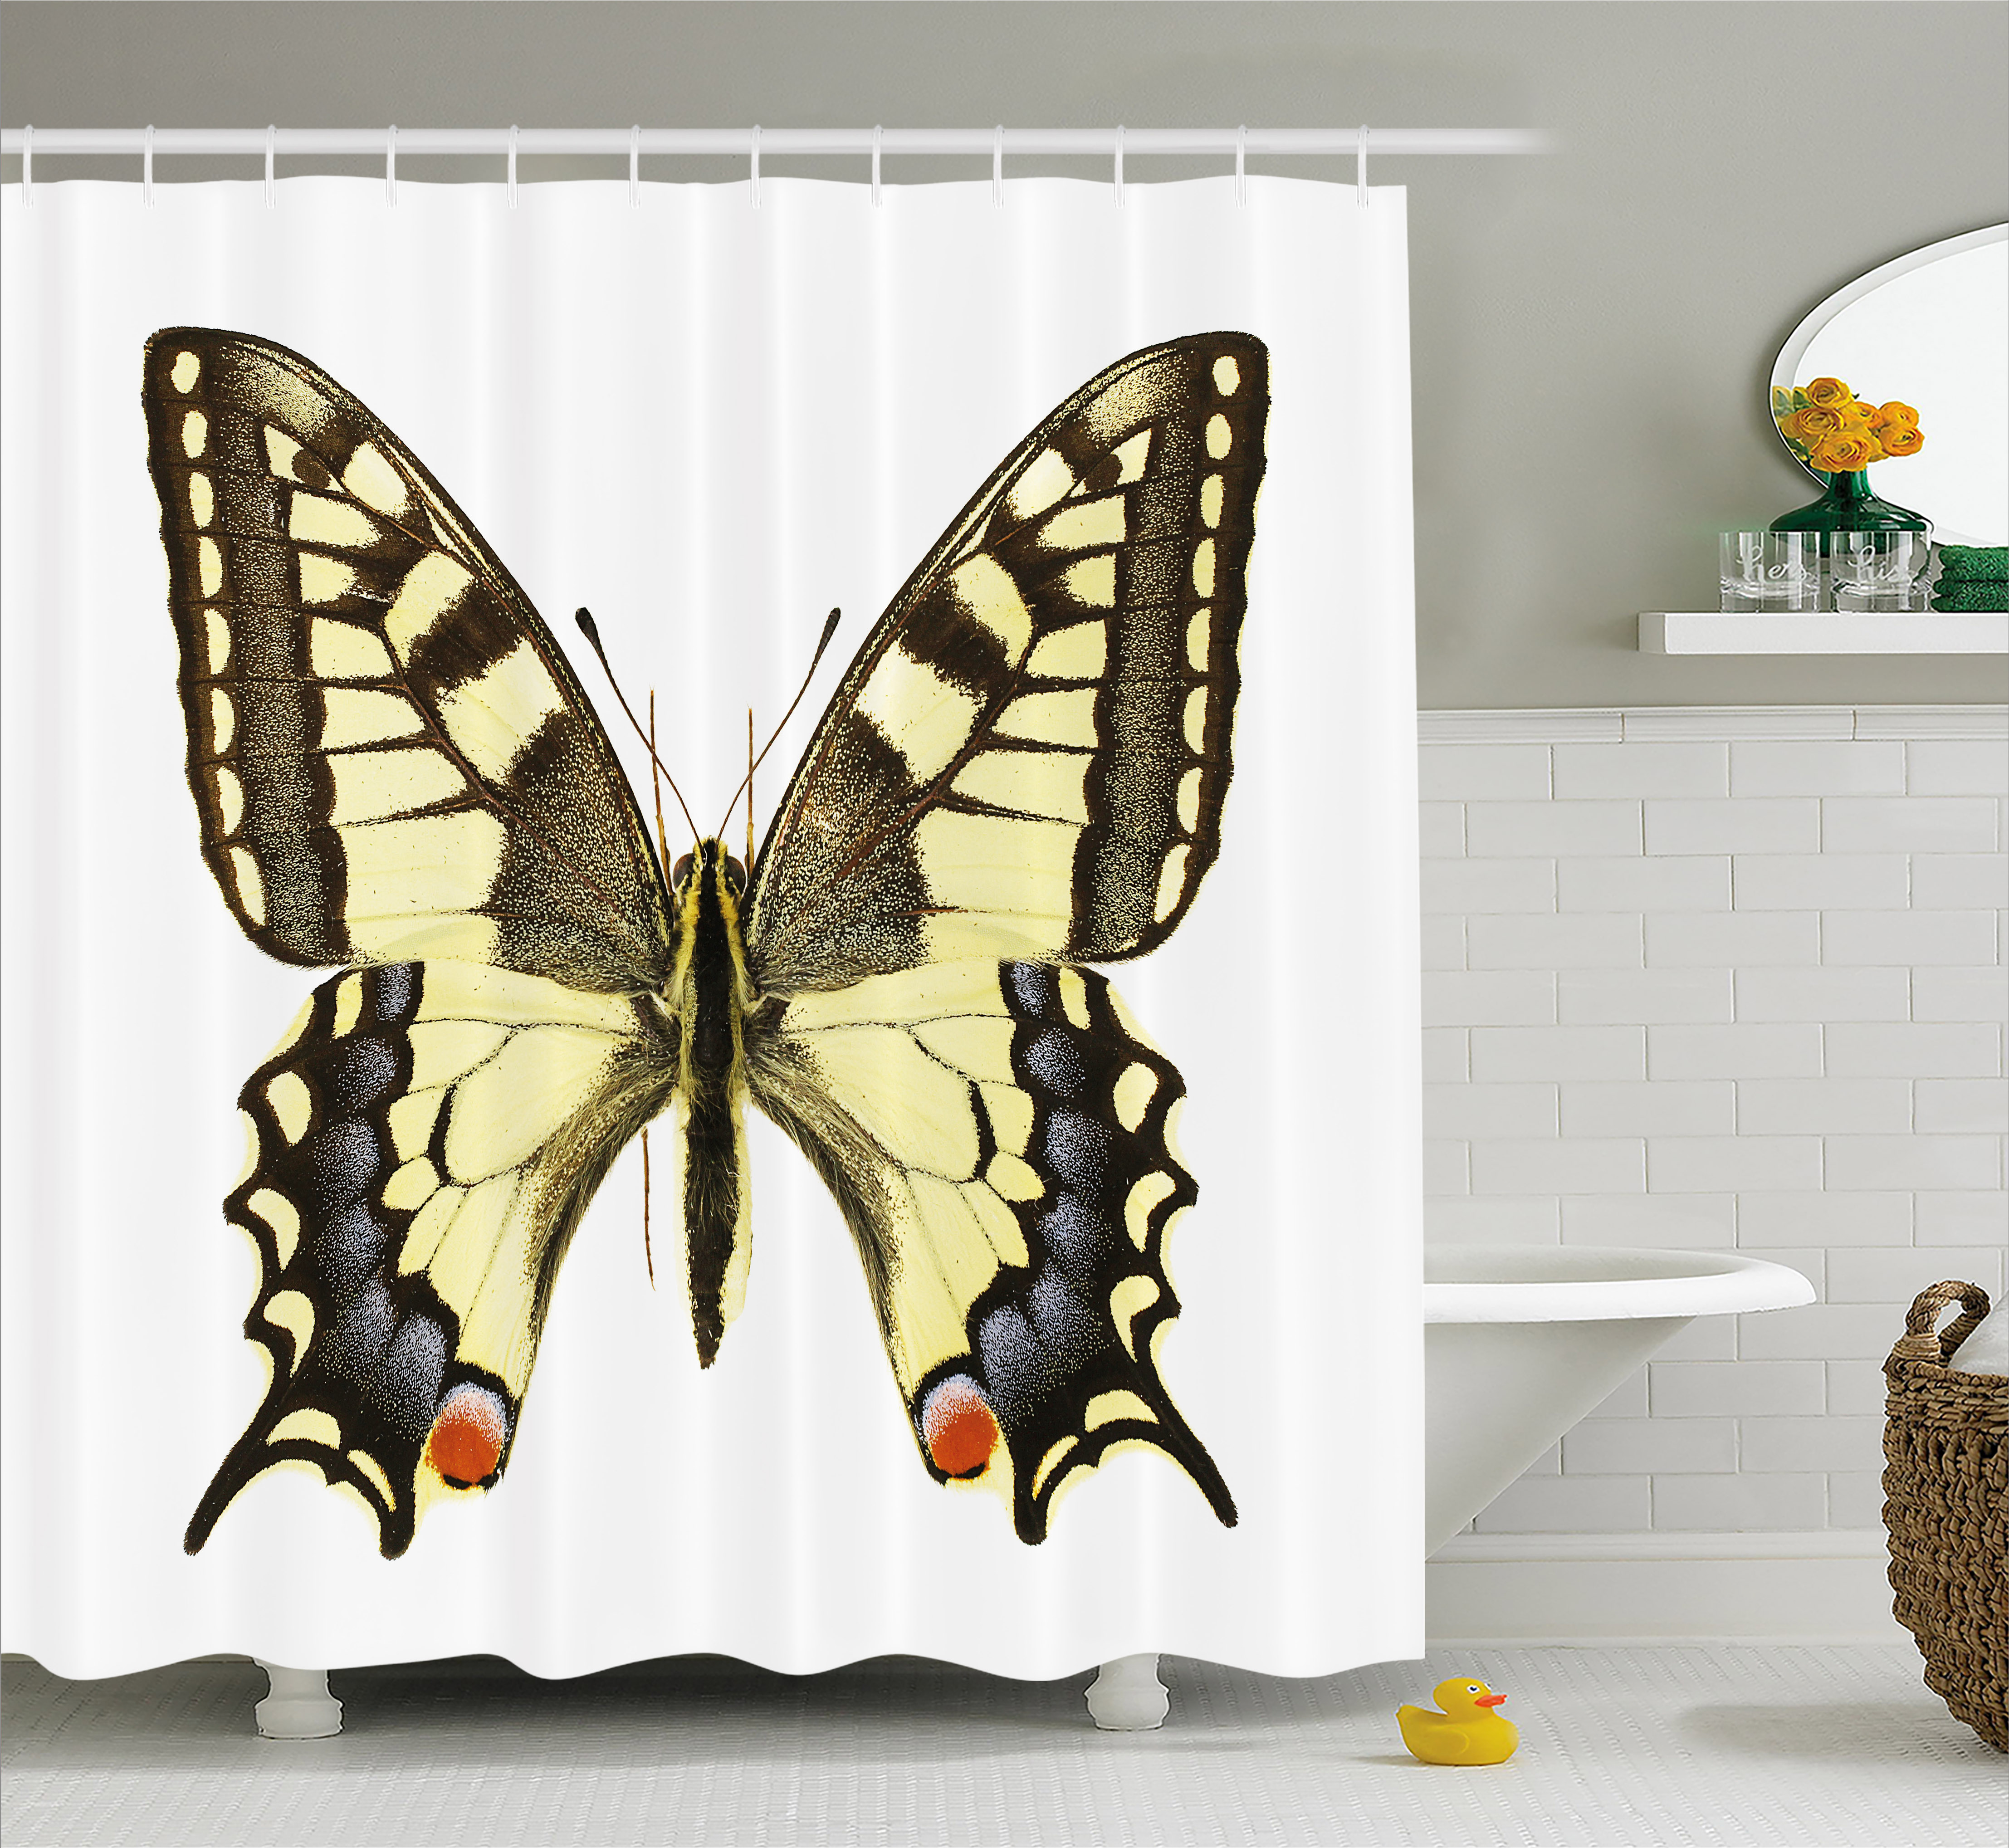 picture regarding Papilio Printable Vinyl titled Swallowtail Butterfly Shower Curtain, Yellow Papilio Machaon Outdated World-wide Swallowtail Wildlife Biology, Cloth Toilet Fixed with Hooks, Yellow Brown